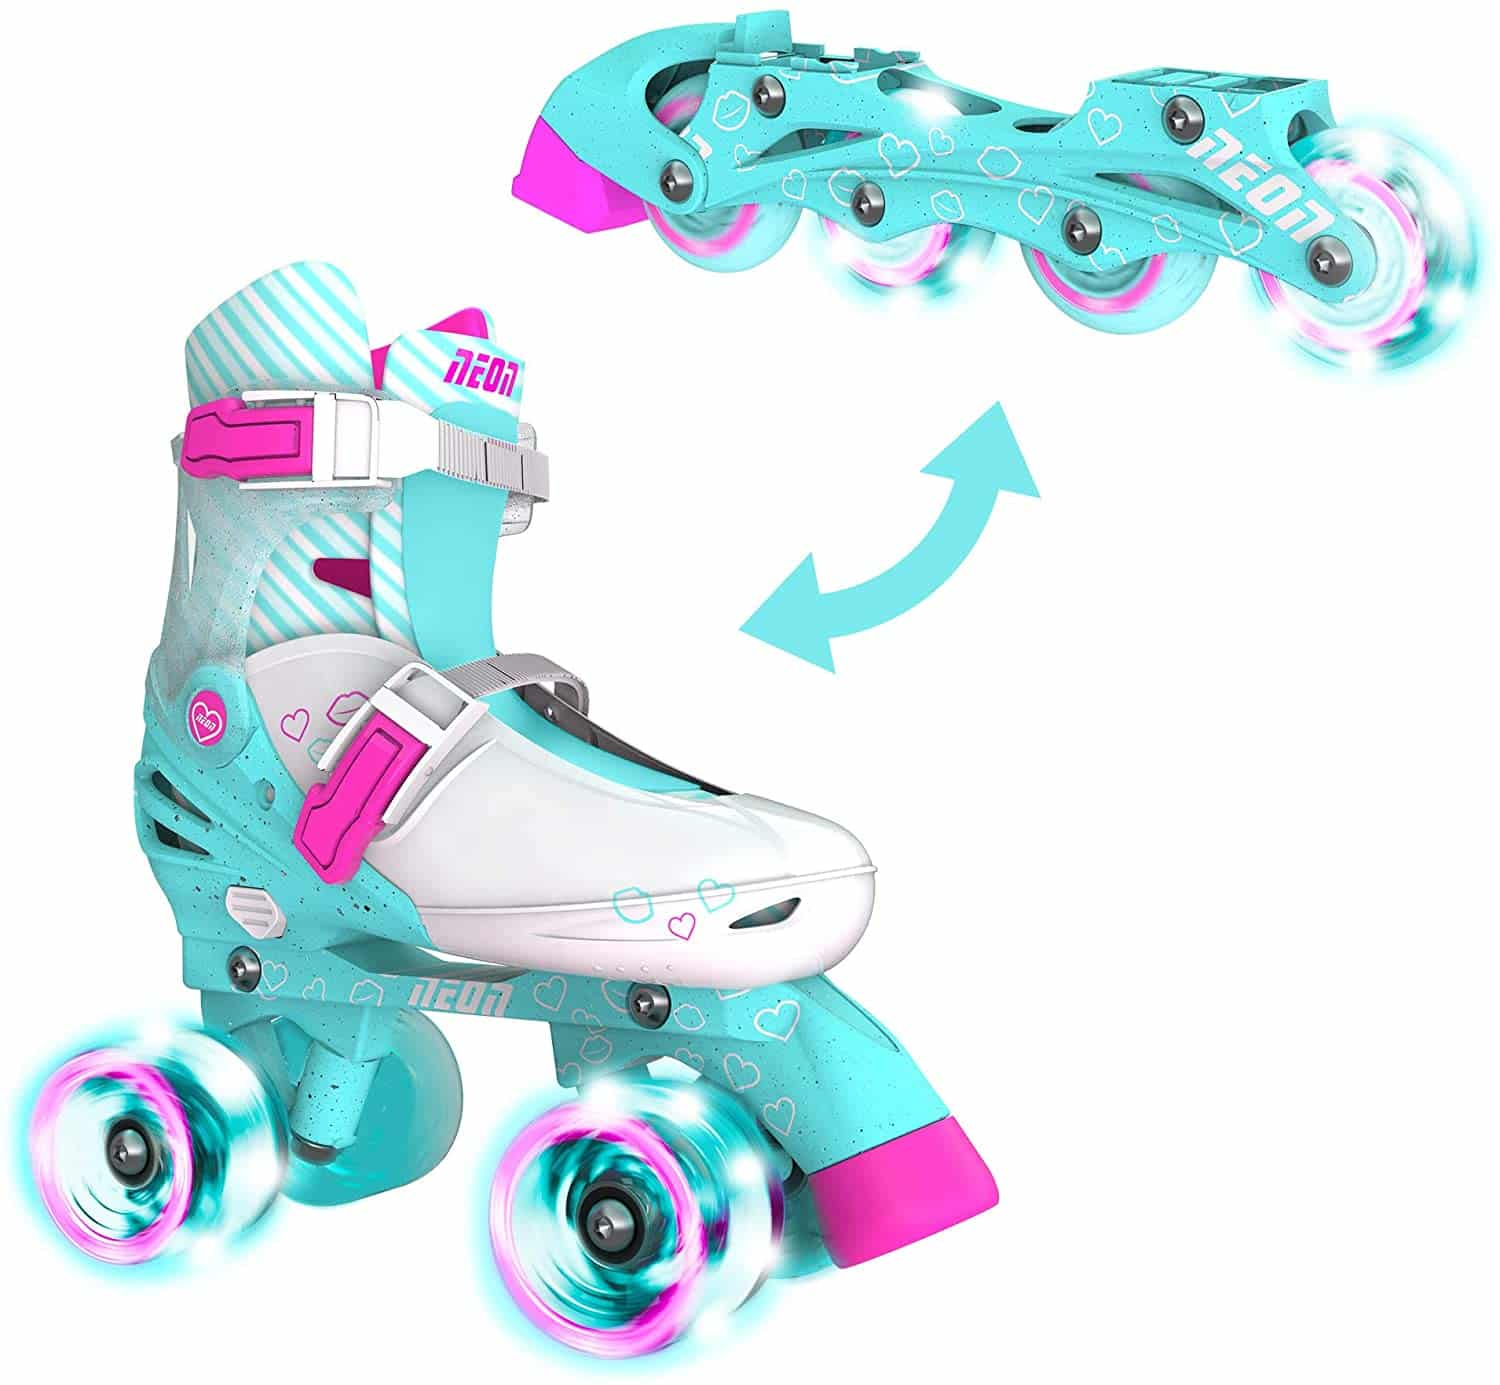 NEON 2-in-1 Combo Skates with Light-up Wheels $39.98